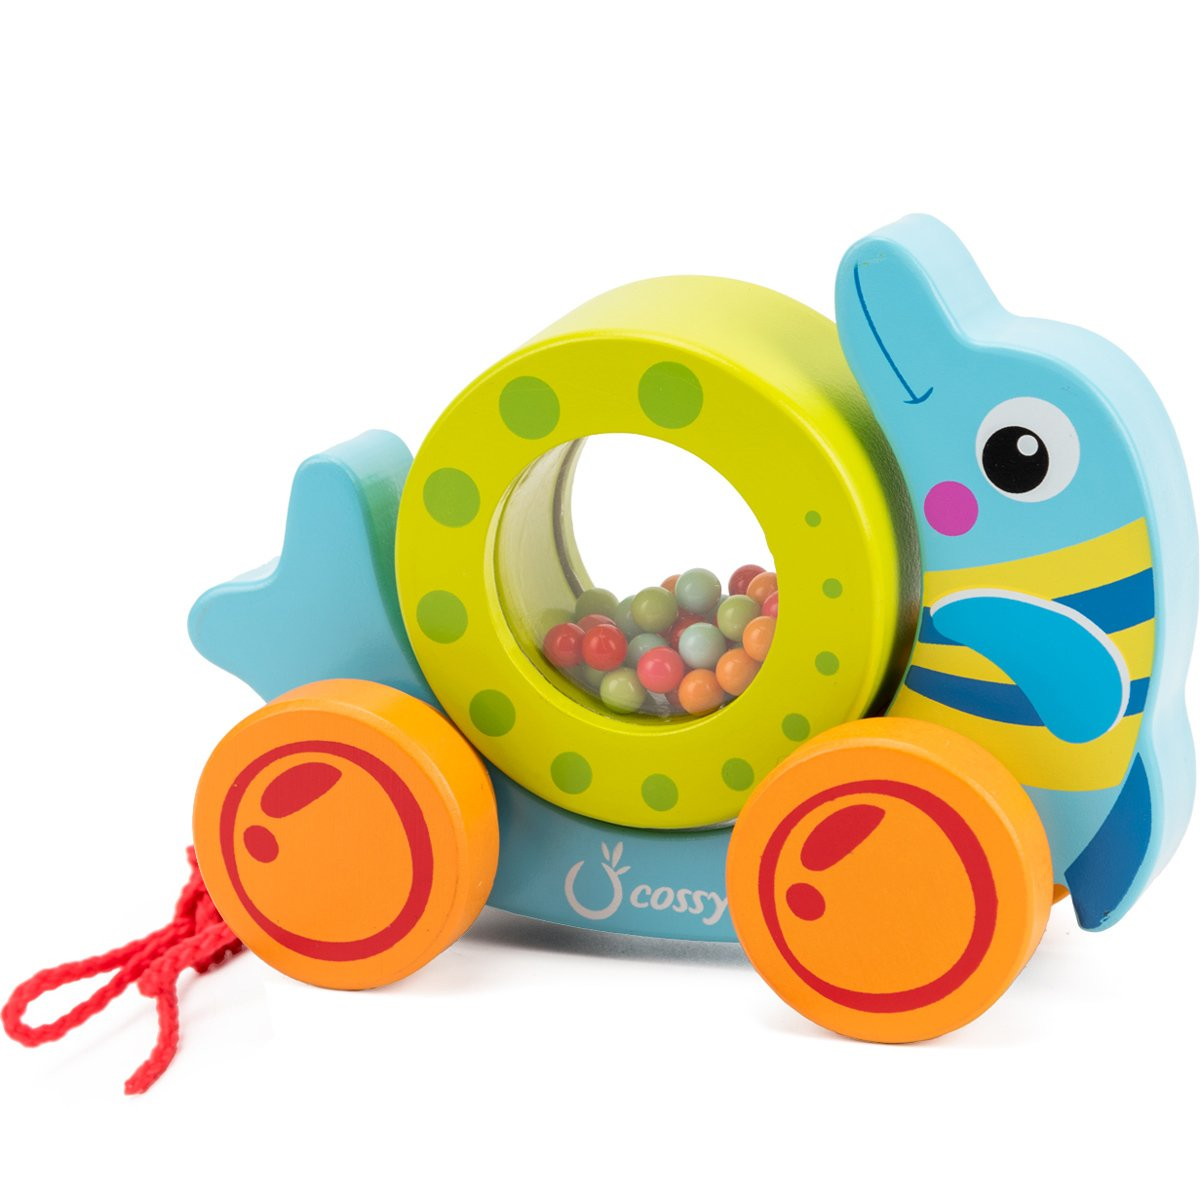 cossy Wooden Pull Toys for 1 Year Old, Rolling Dolphin Push Toy for Toddler Children Kids by cossy (Image #1)